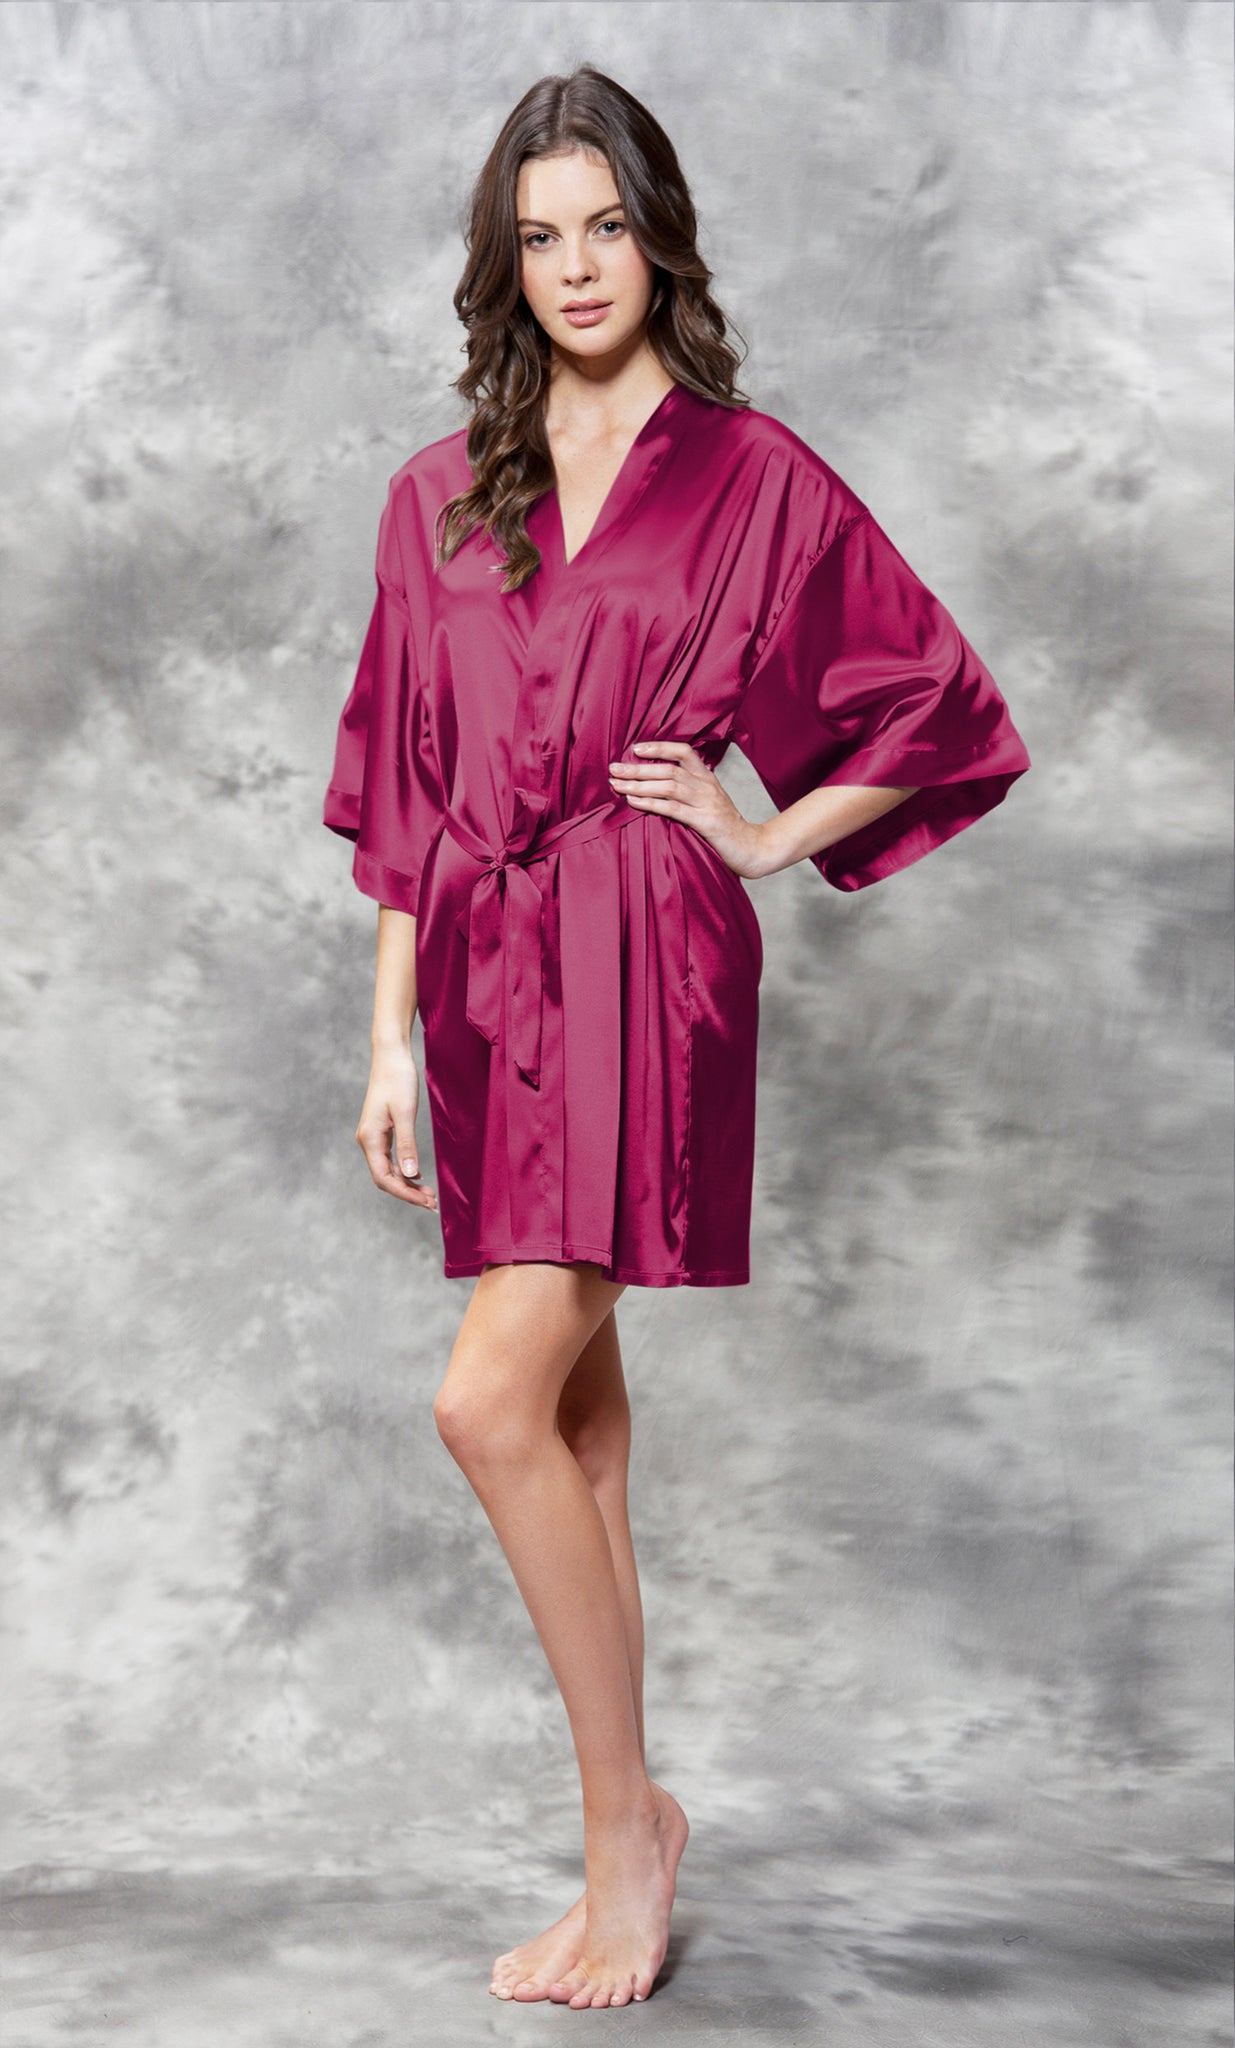 Solid Satin Robes - Red Wine - Ciao Bella Boutique